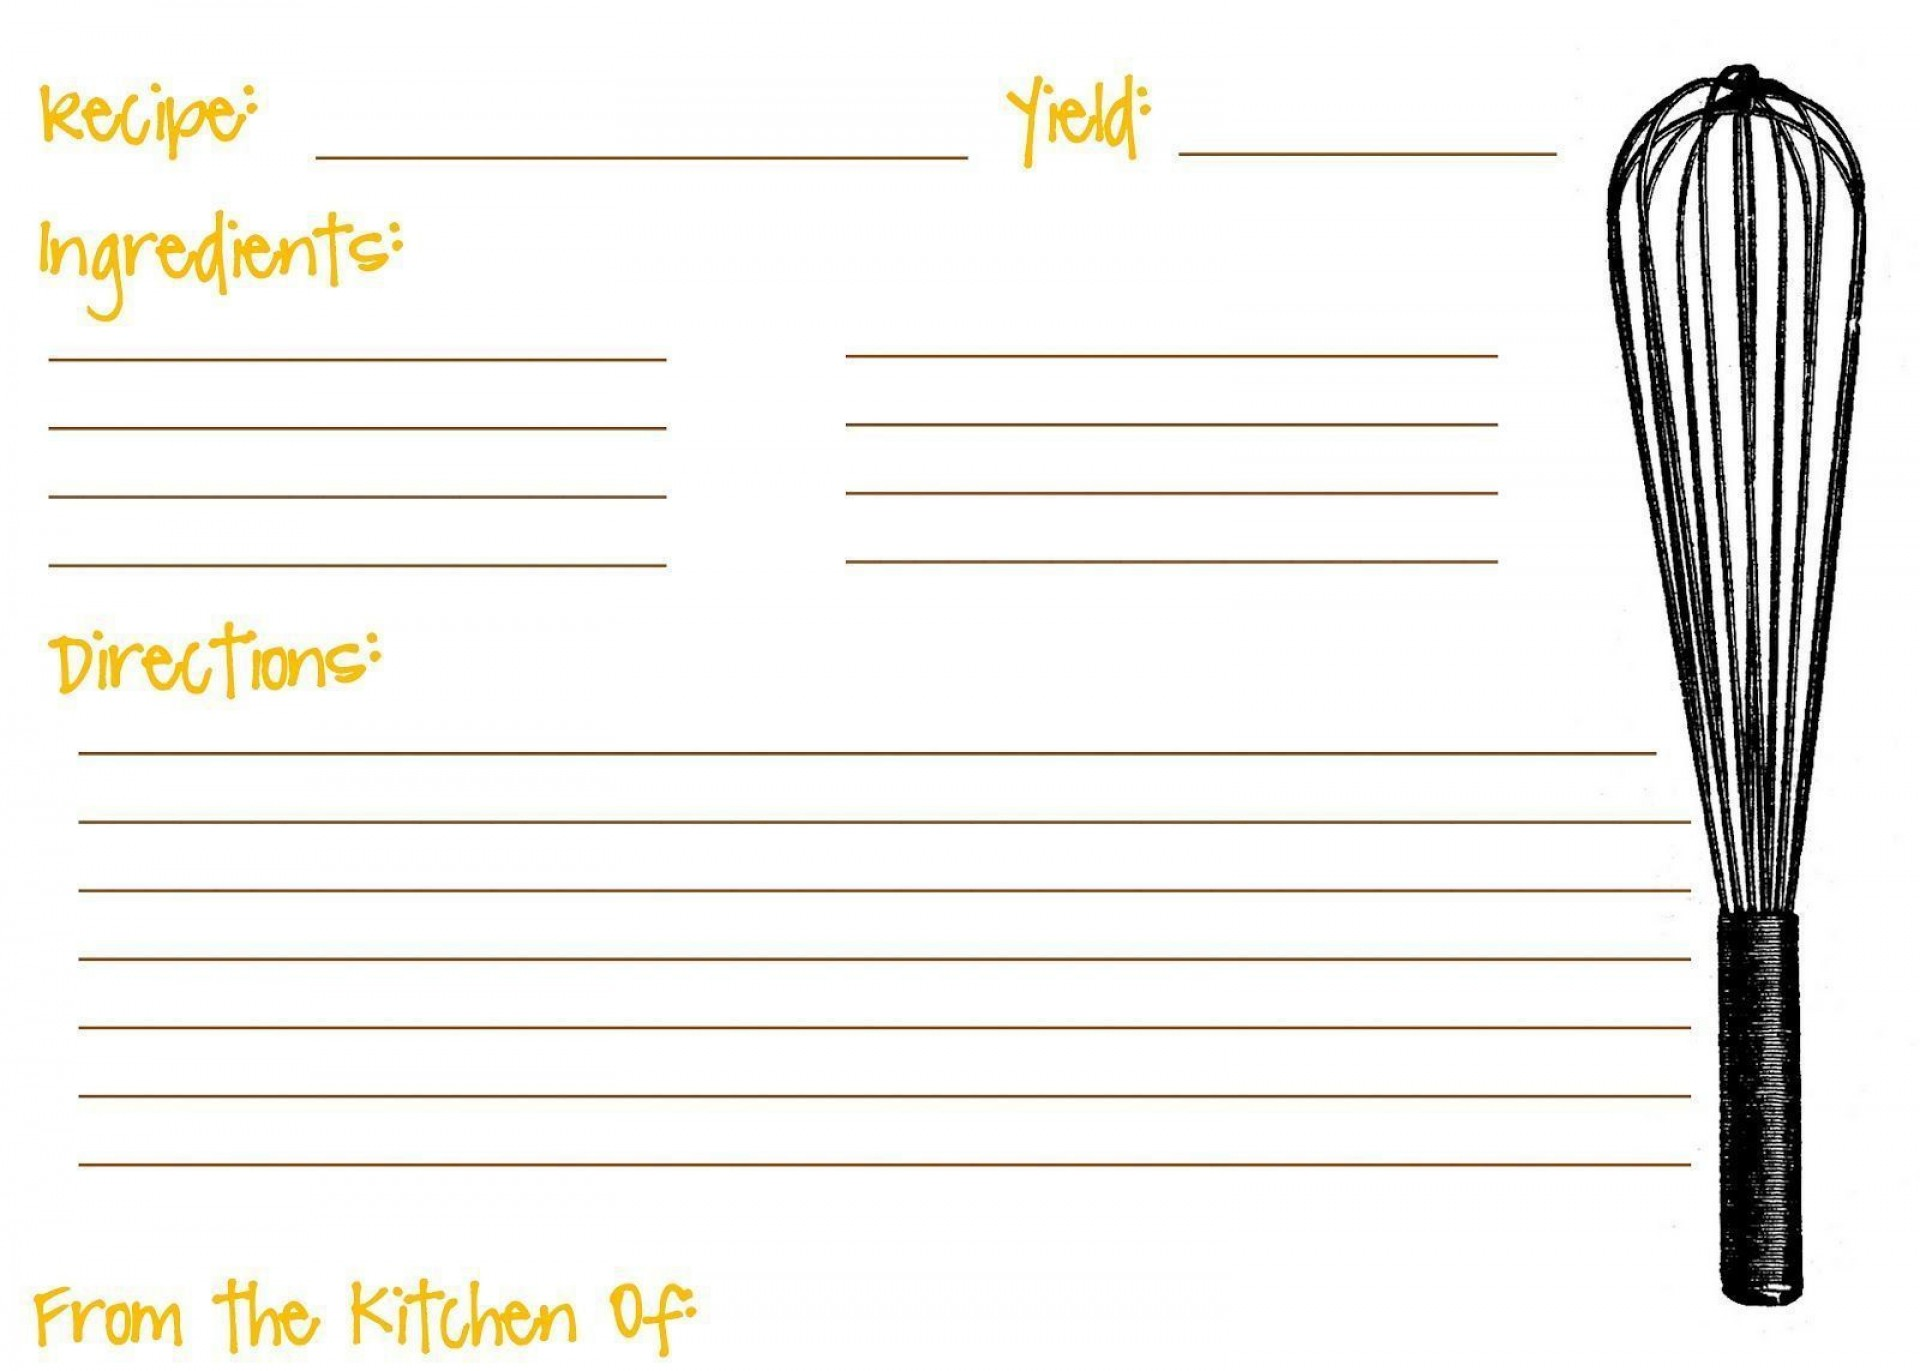 009 Sensational Fillable Recipe Card Template Picture  For Word Free1920